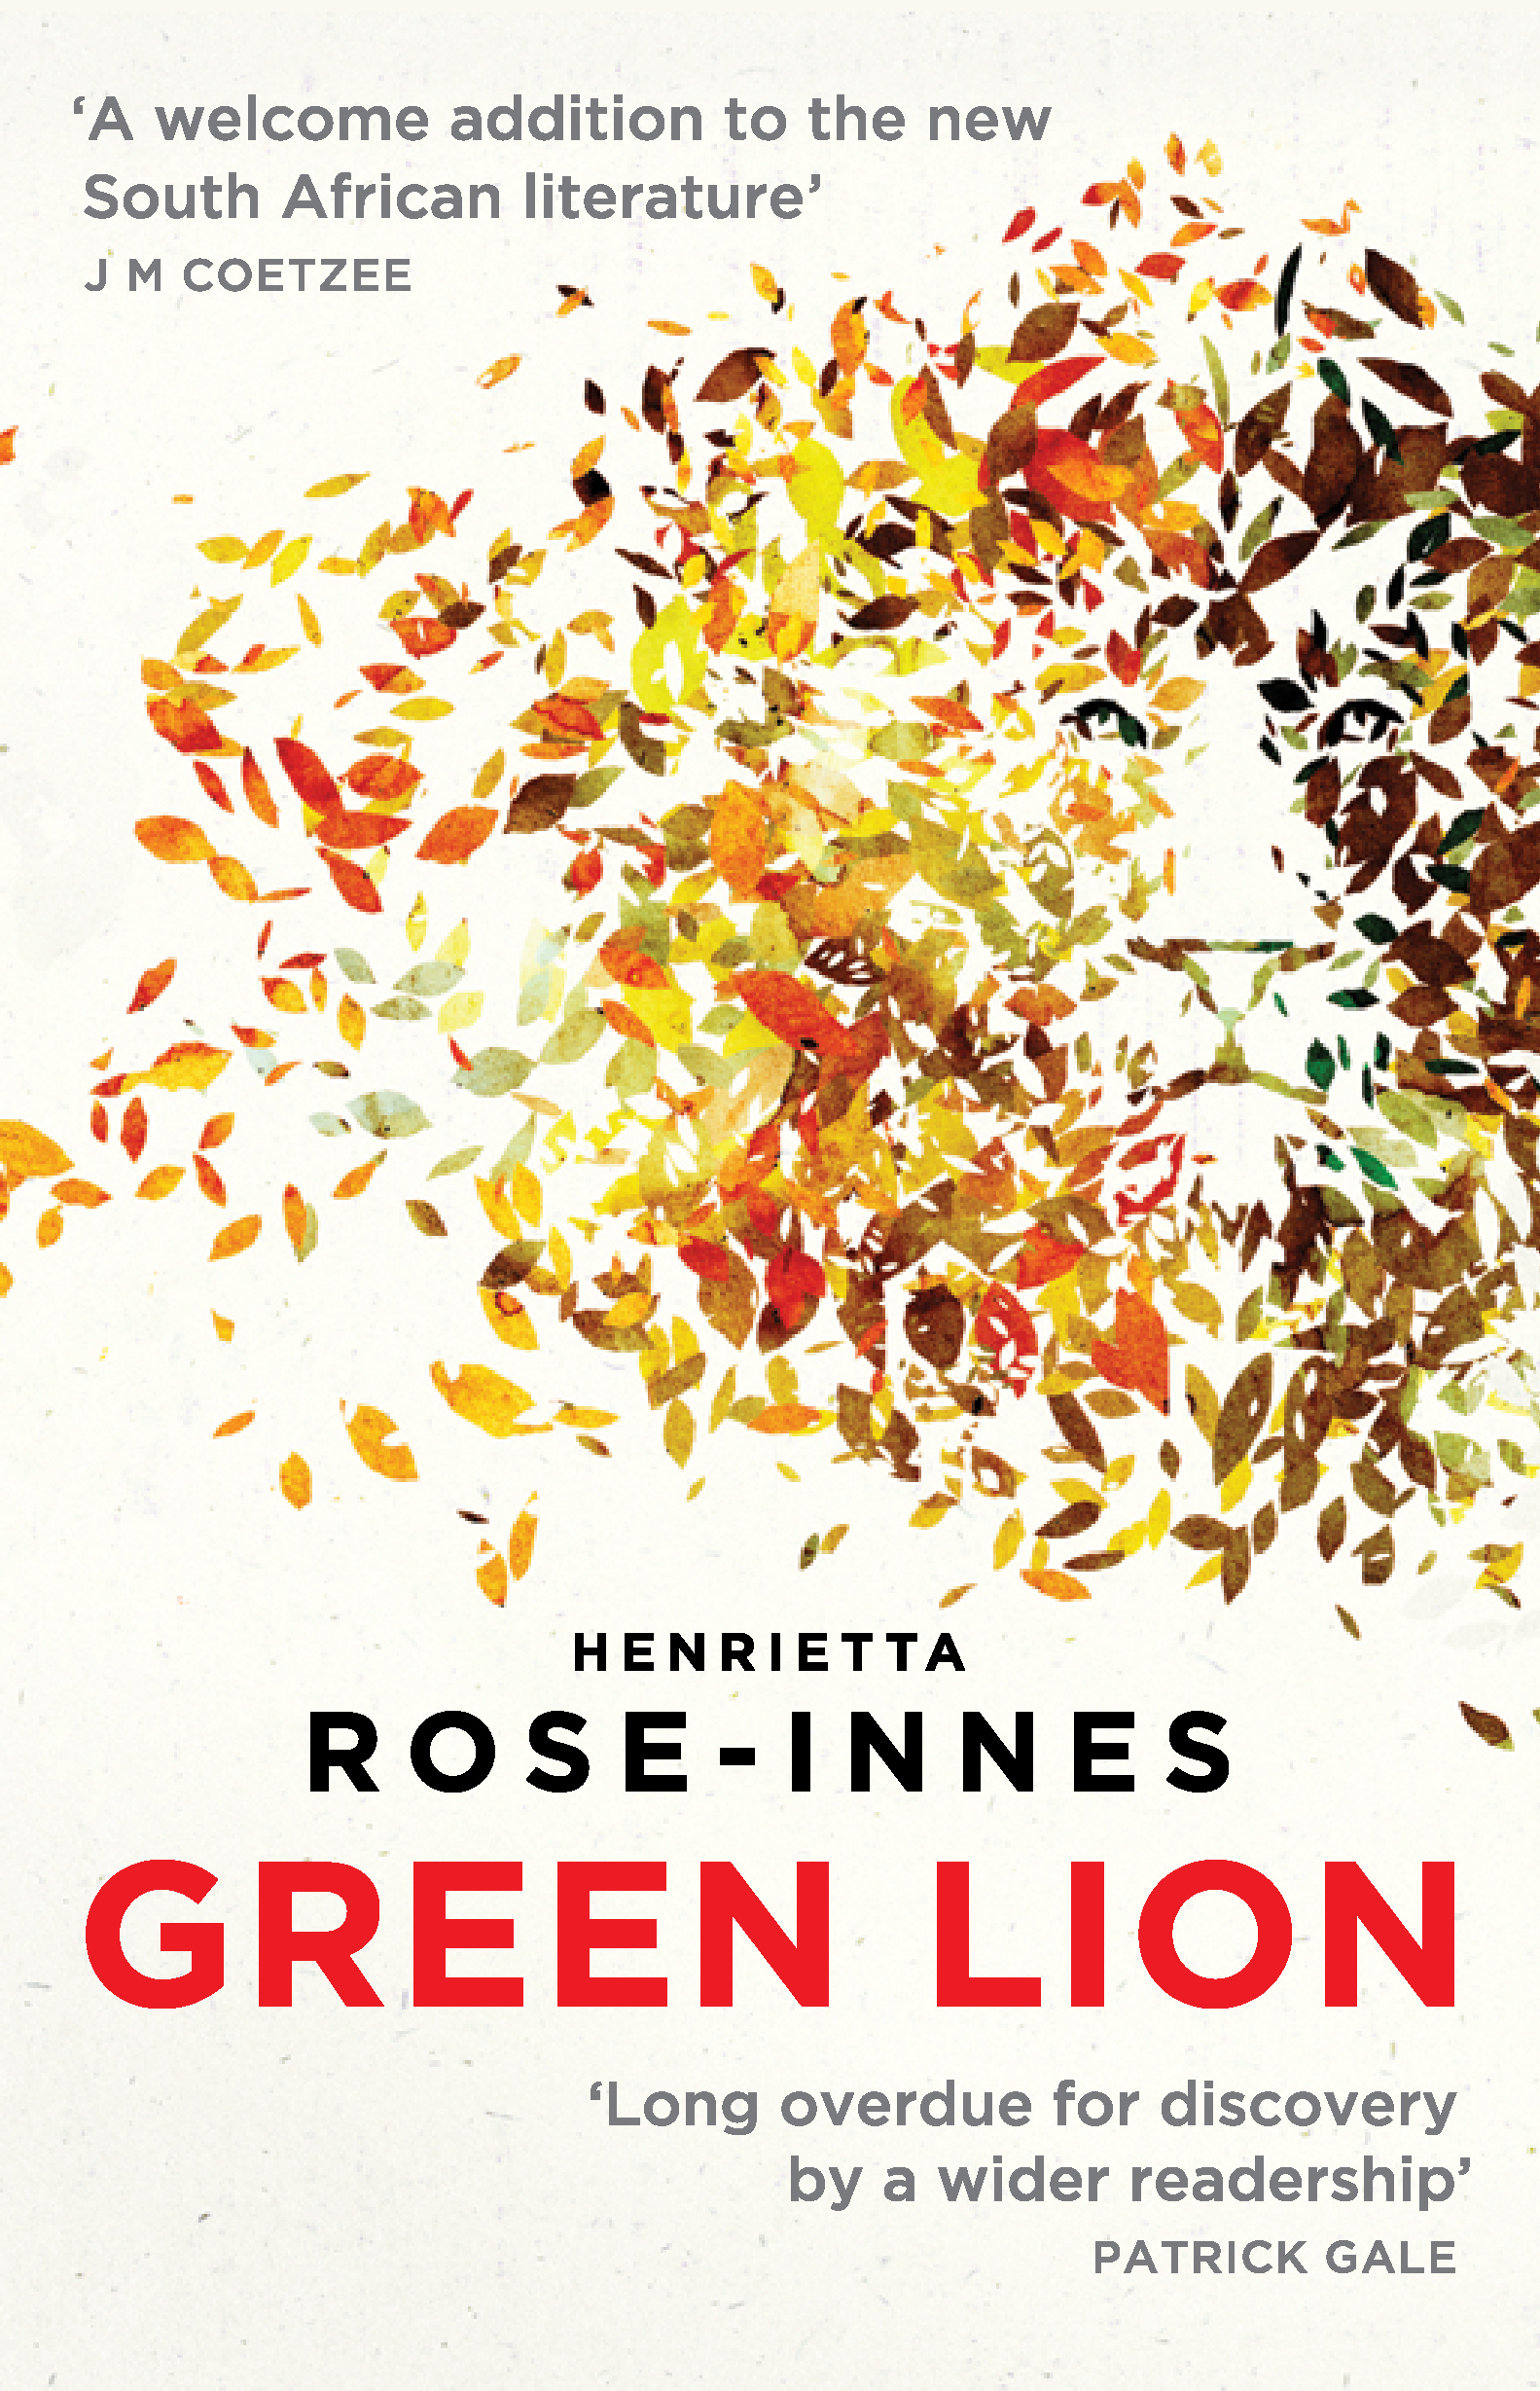 GREEN LION  Literary Fiction, 264 pages Umuzi/Random House SA - May 2015 Aardvark Bureau UK August 2017  Con, adrift and emotionally numb, is drawn into a fascinating but disturbing new world when Mark, an old school friend, is mauled by a rare lion at the breeding park where he worked. Con steps into the role, becoming obsessed with the lioness, the only remaining Cape black-maned lion known to exist. A book about extinctions, and loss, and the impossibility of bringing things back from oblivion; and also about the mythic importance of animals in human lives.